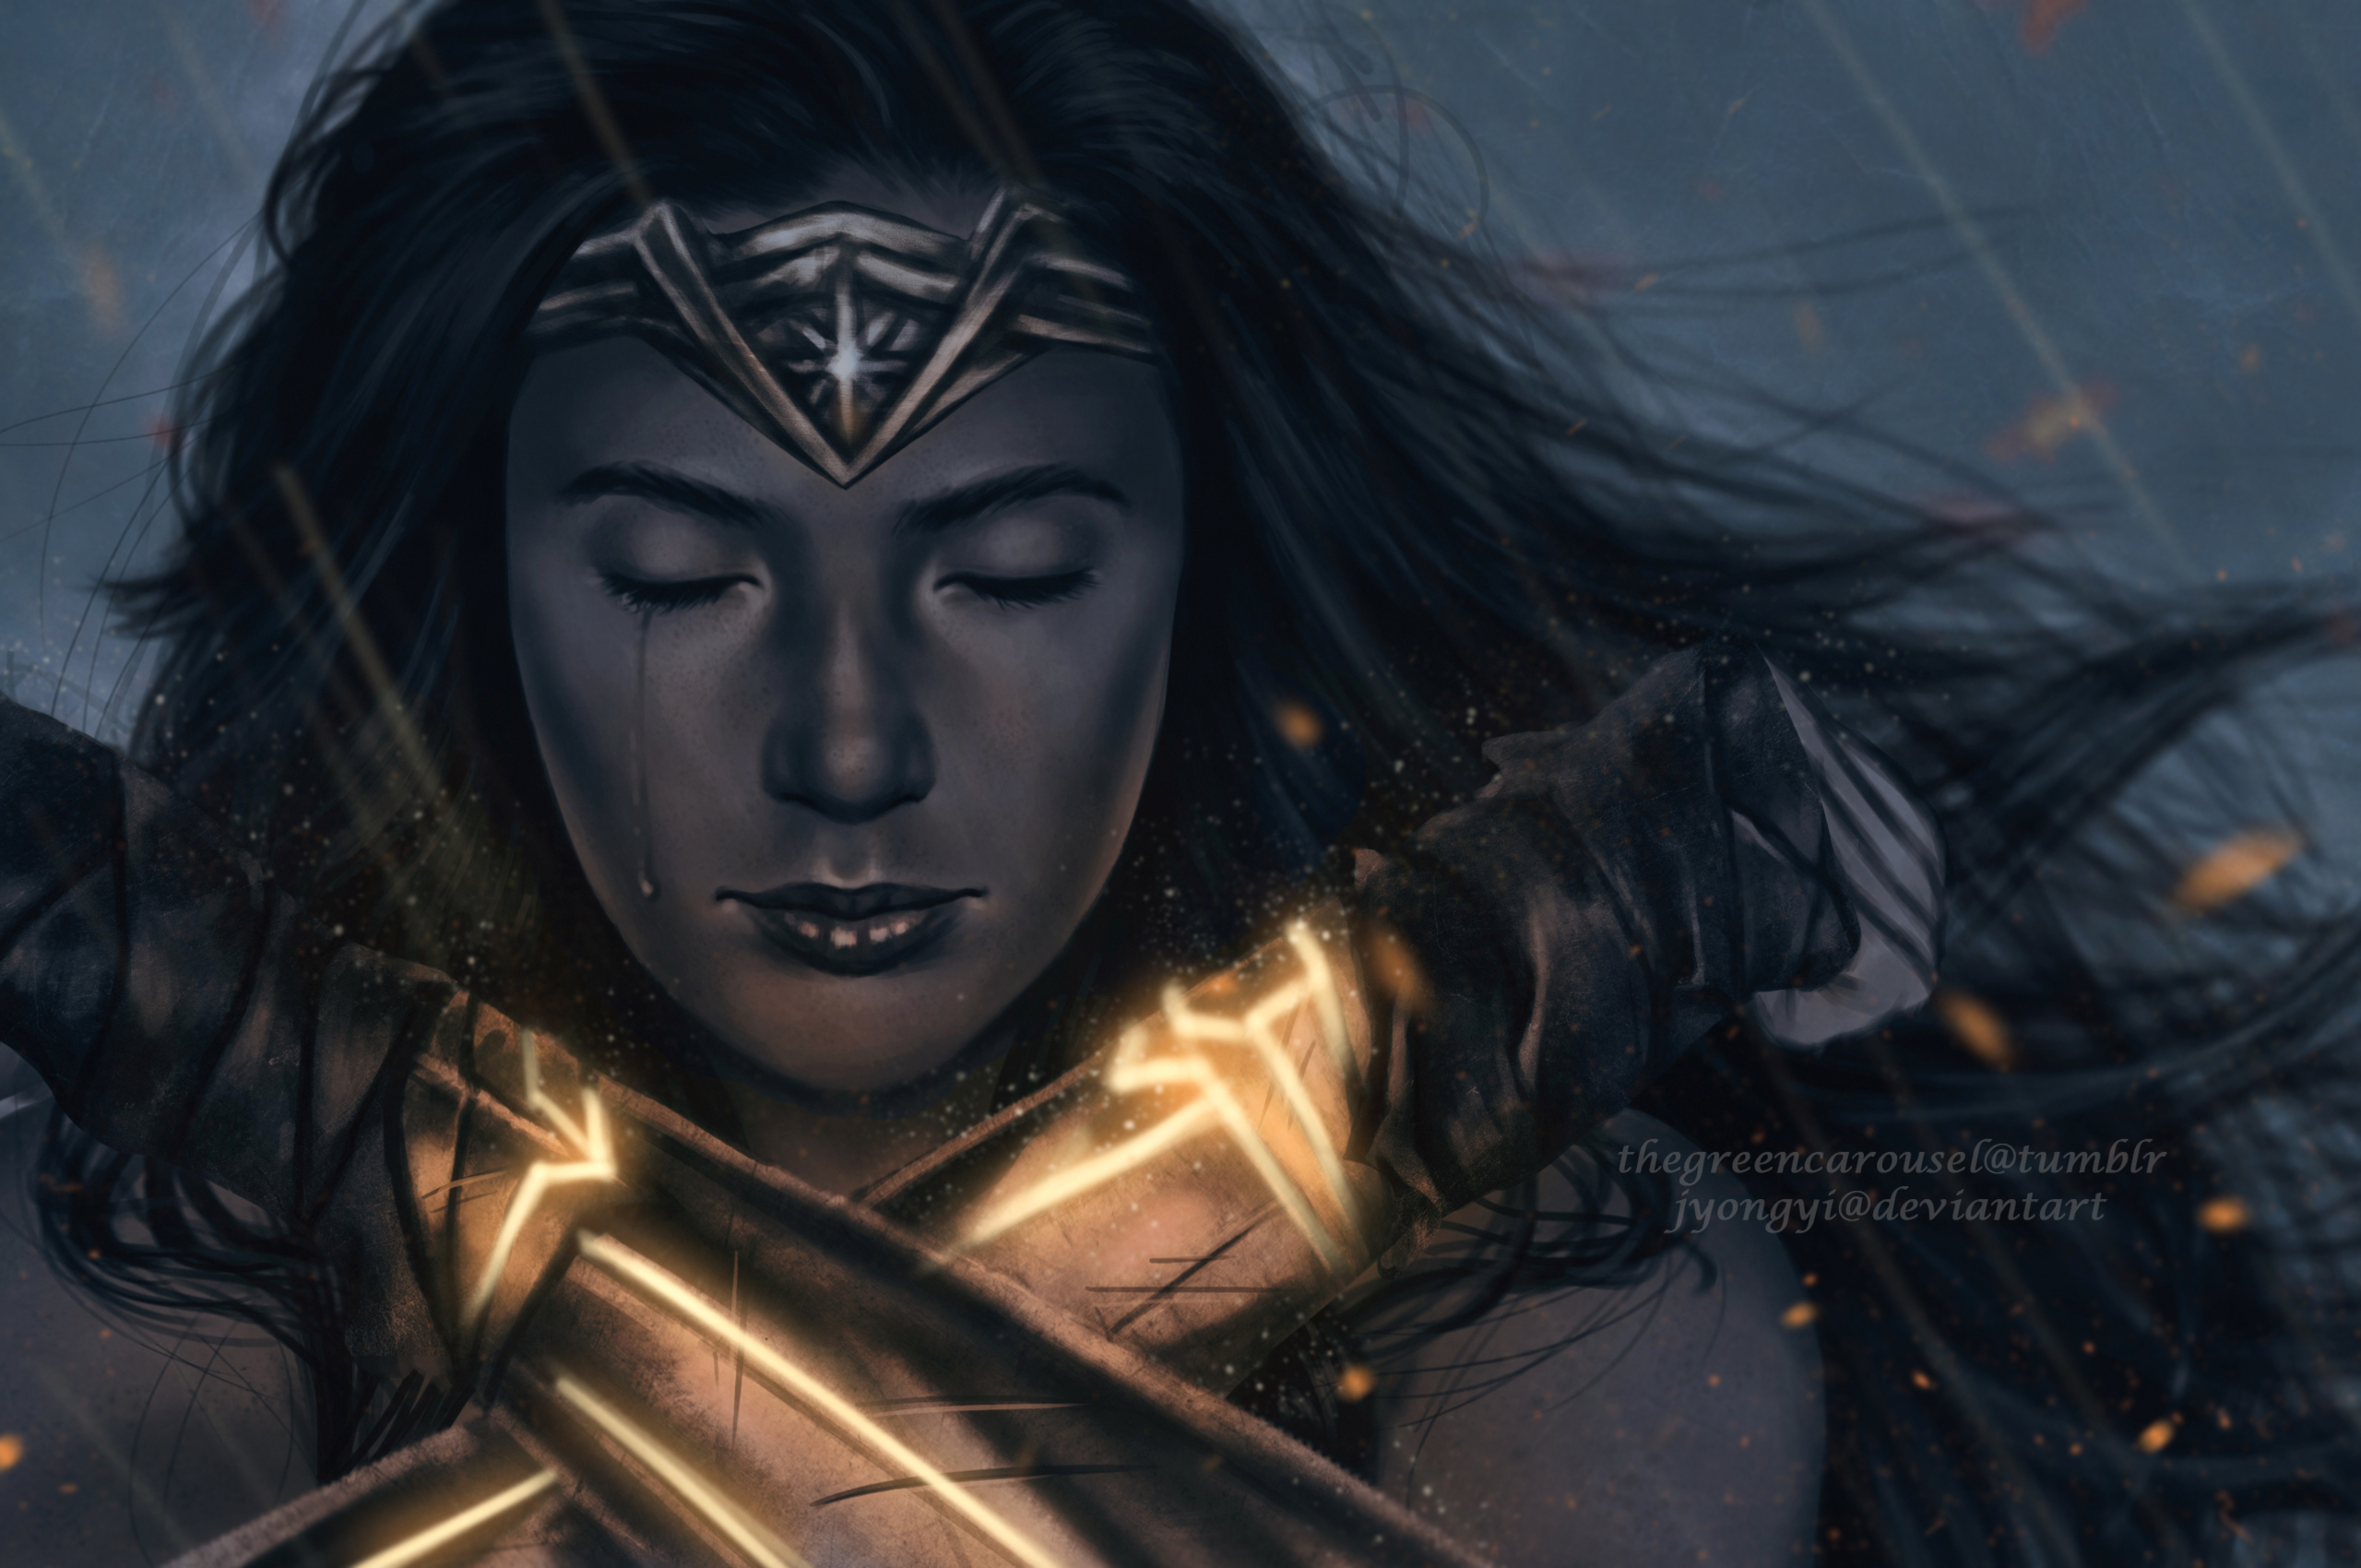 2560x1700 Wonder Woman Fan Art No Mans Land Chromebook Pixel HD 4k Wallpapers Images Backgrounds Photos And Pictures